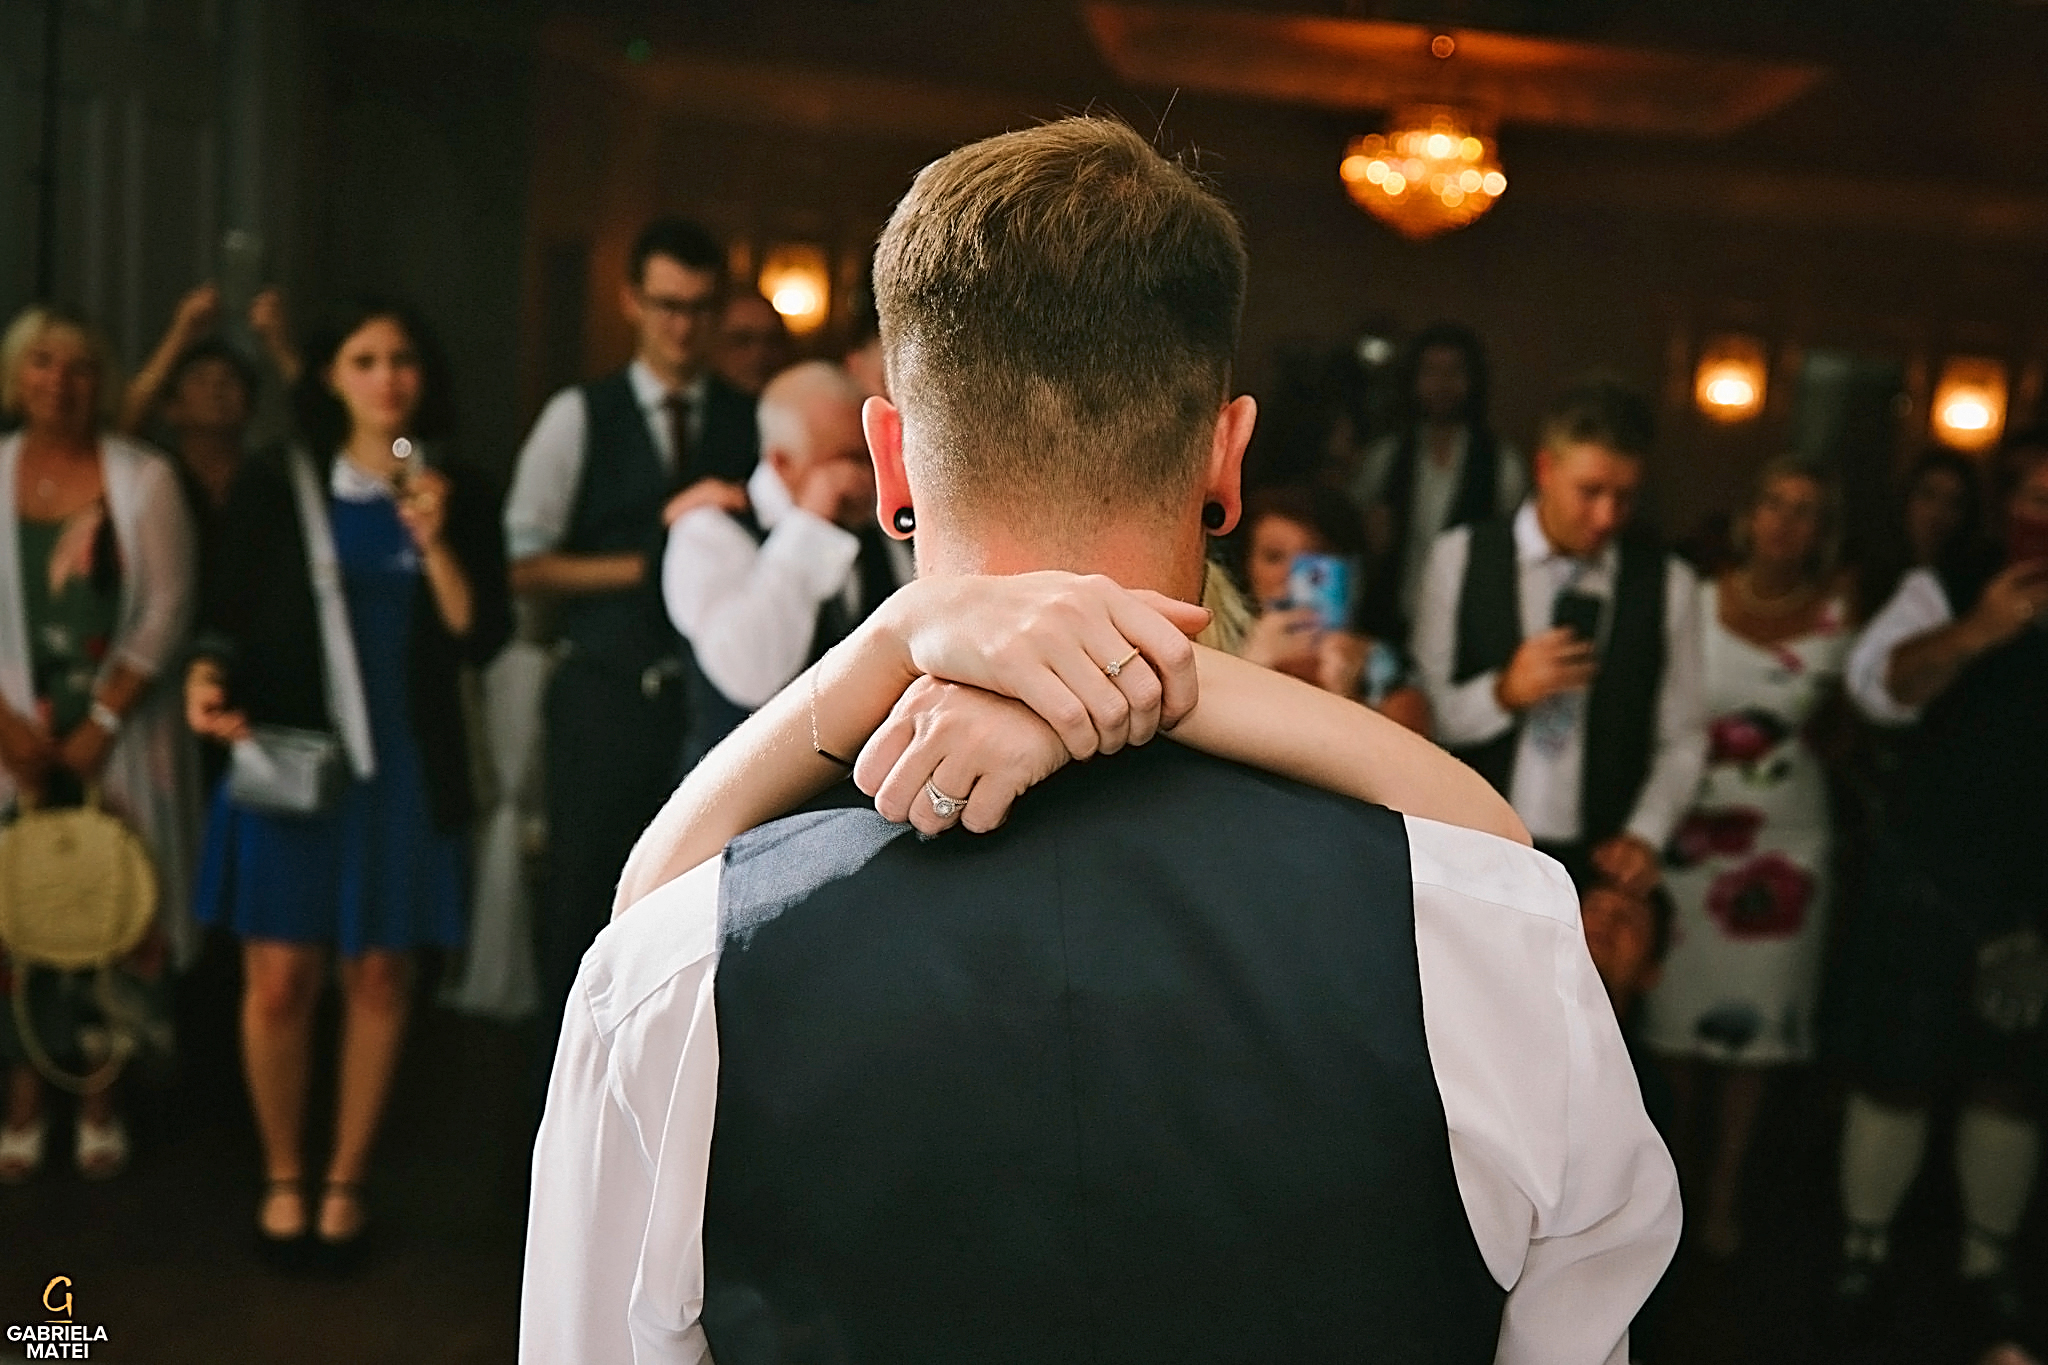 Bride places her hands on the groom's shoulders during first dance at wedding reception in LondonA